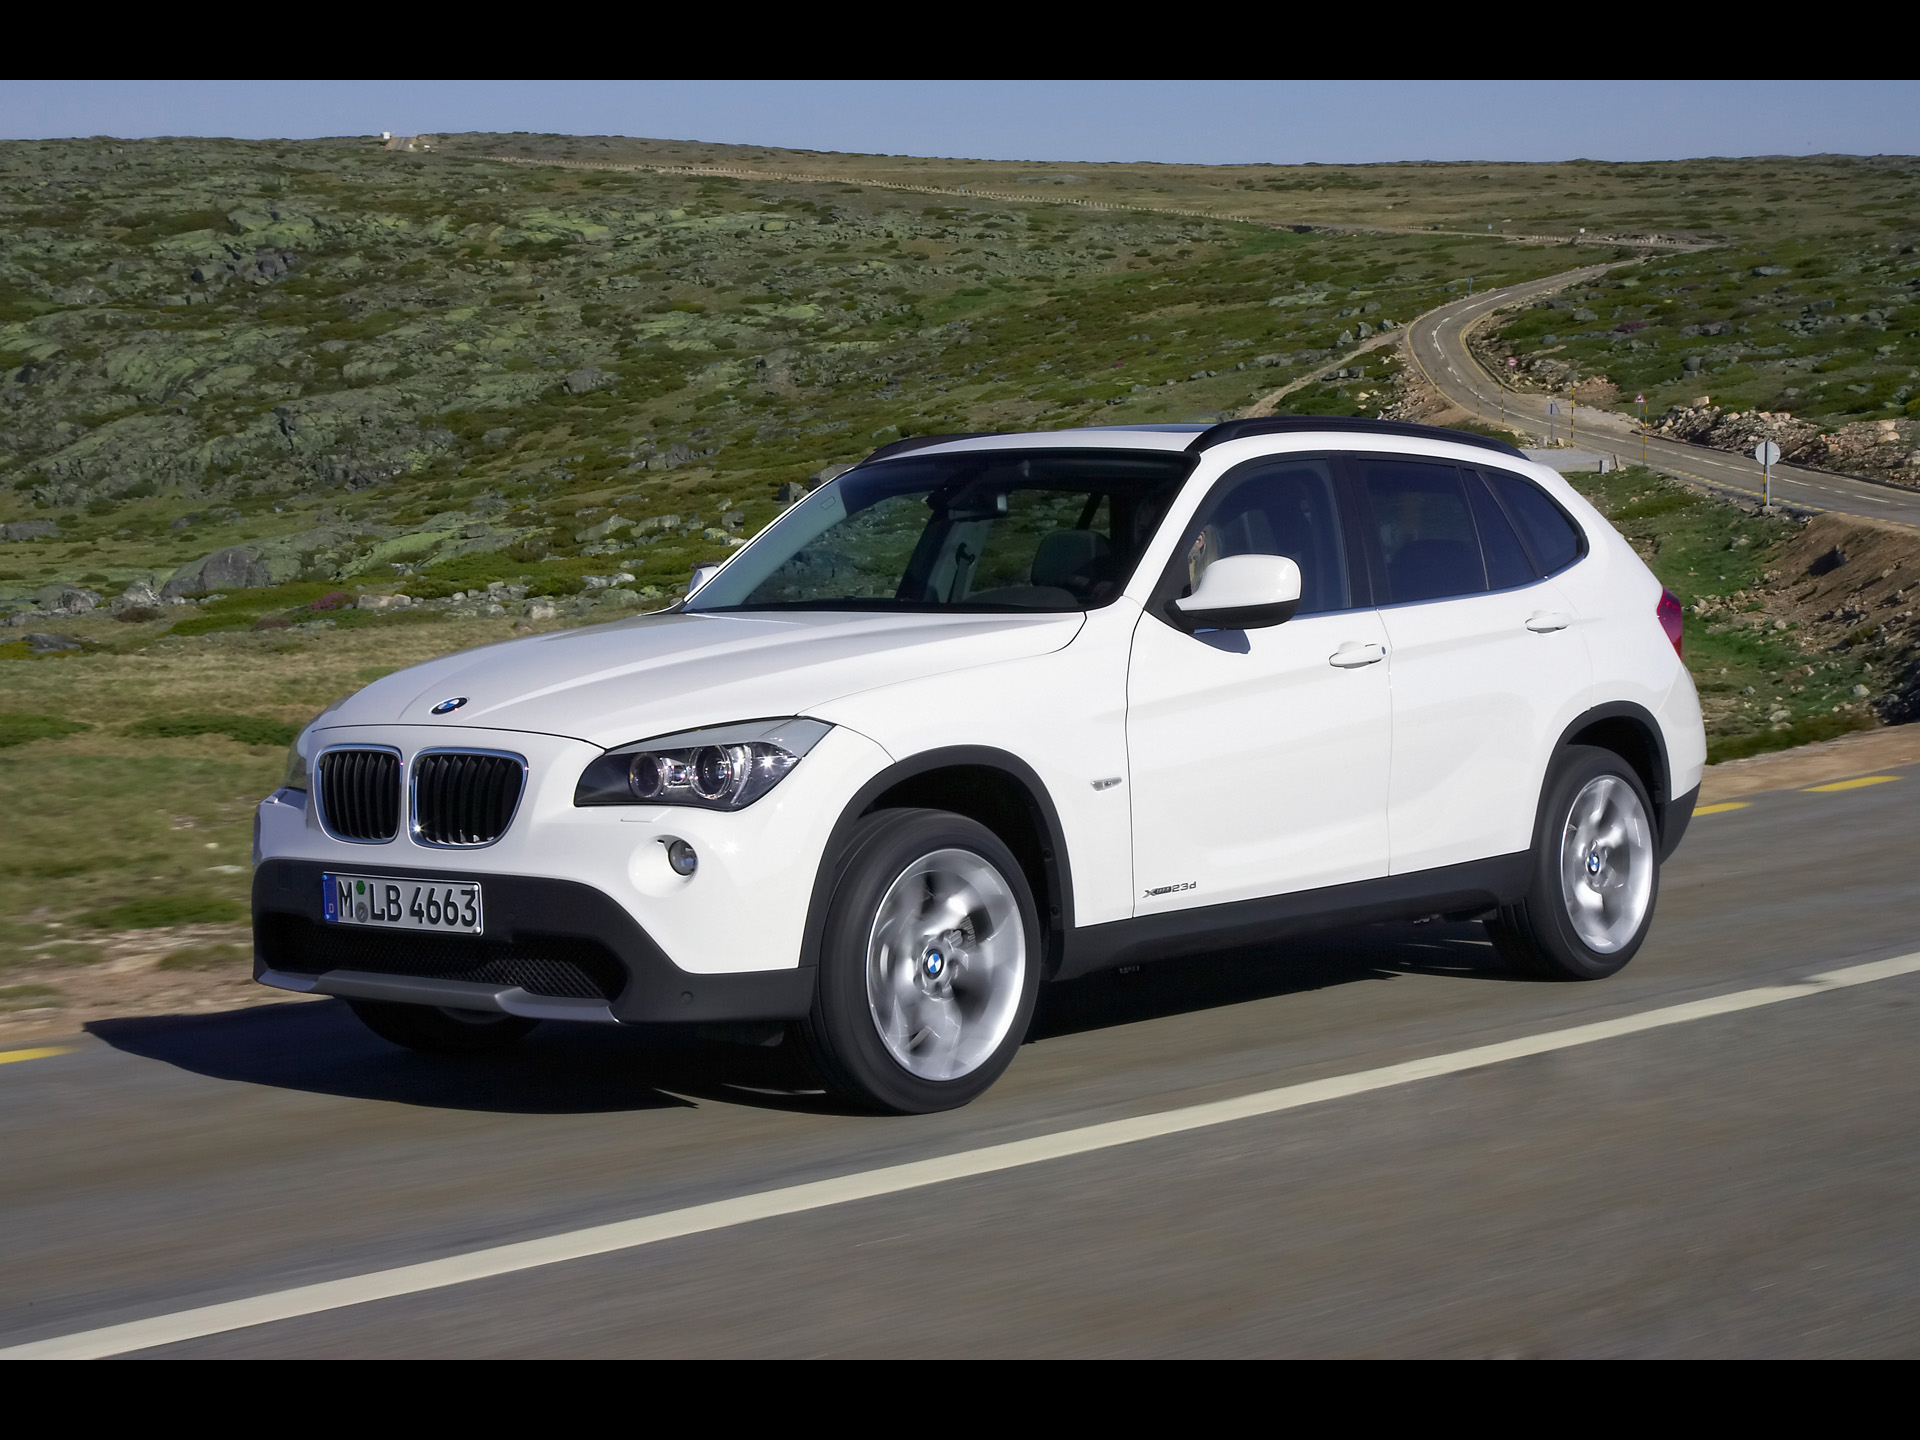 1920x1440 Bmw X1 Front And Side Speed White Desktop Pc And Mac Wallpaper